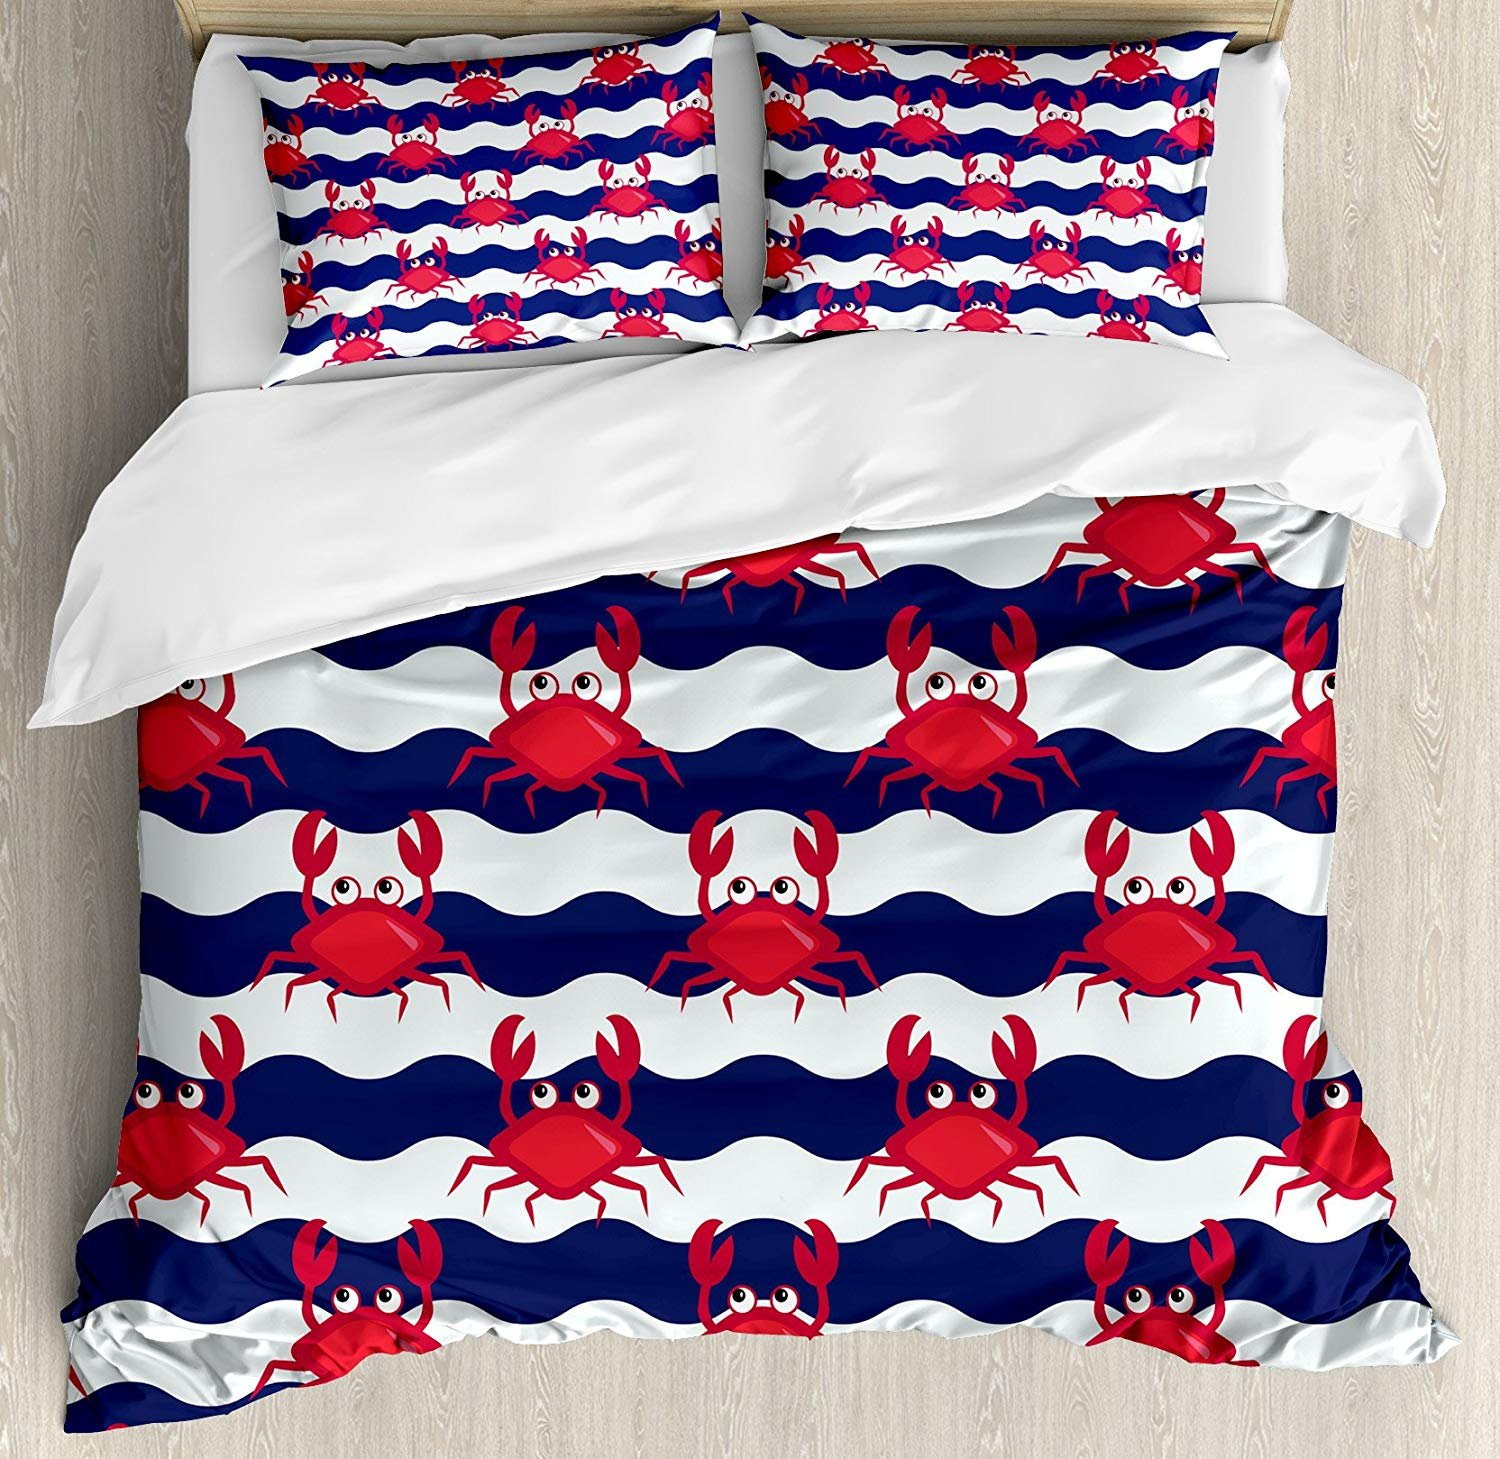 Multi 2 Full Crabs Duvet Cover Set Full, Lightweight 4 Pieces Bedding Set with Zipper Ties Includes 2 Pillow Shams  Nautical Maritime Theme Cute Crabs on Striped Background Illustration Print Red and Navy bluee